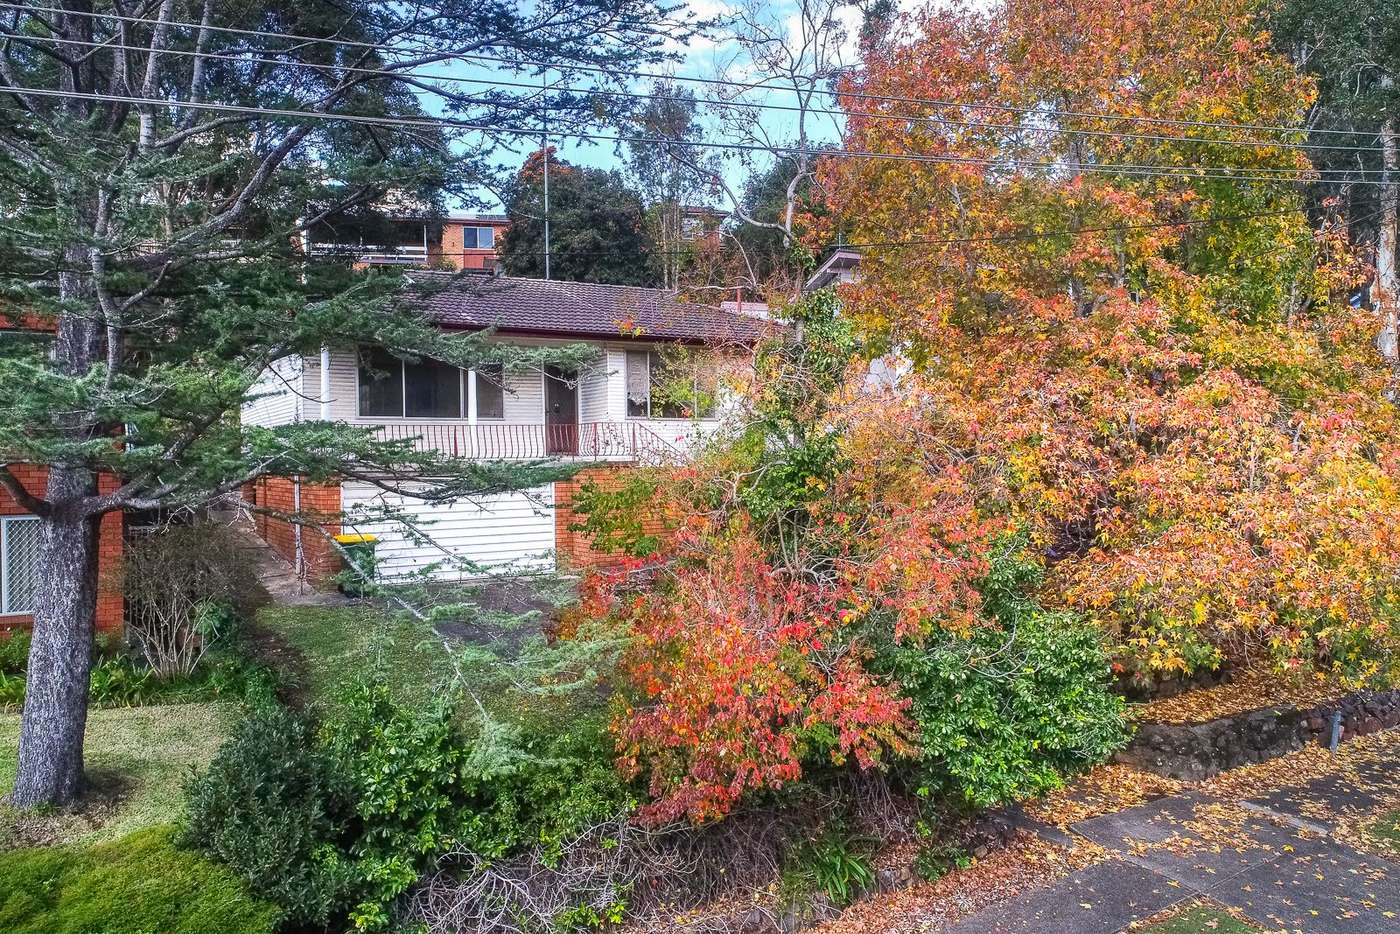 Main view of Homely house listing, 29 Nereida Close, Kotara NSW 2289